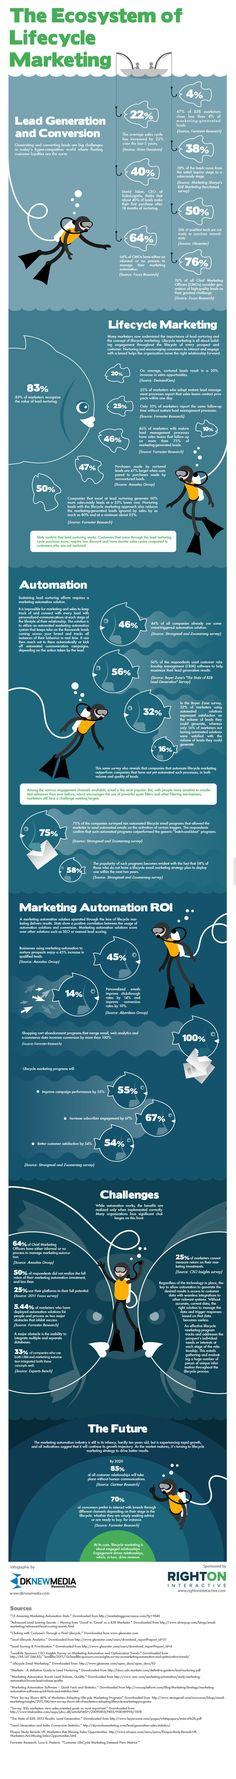 Lifecycle marketing & lead generation [#infographic].